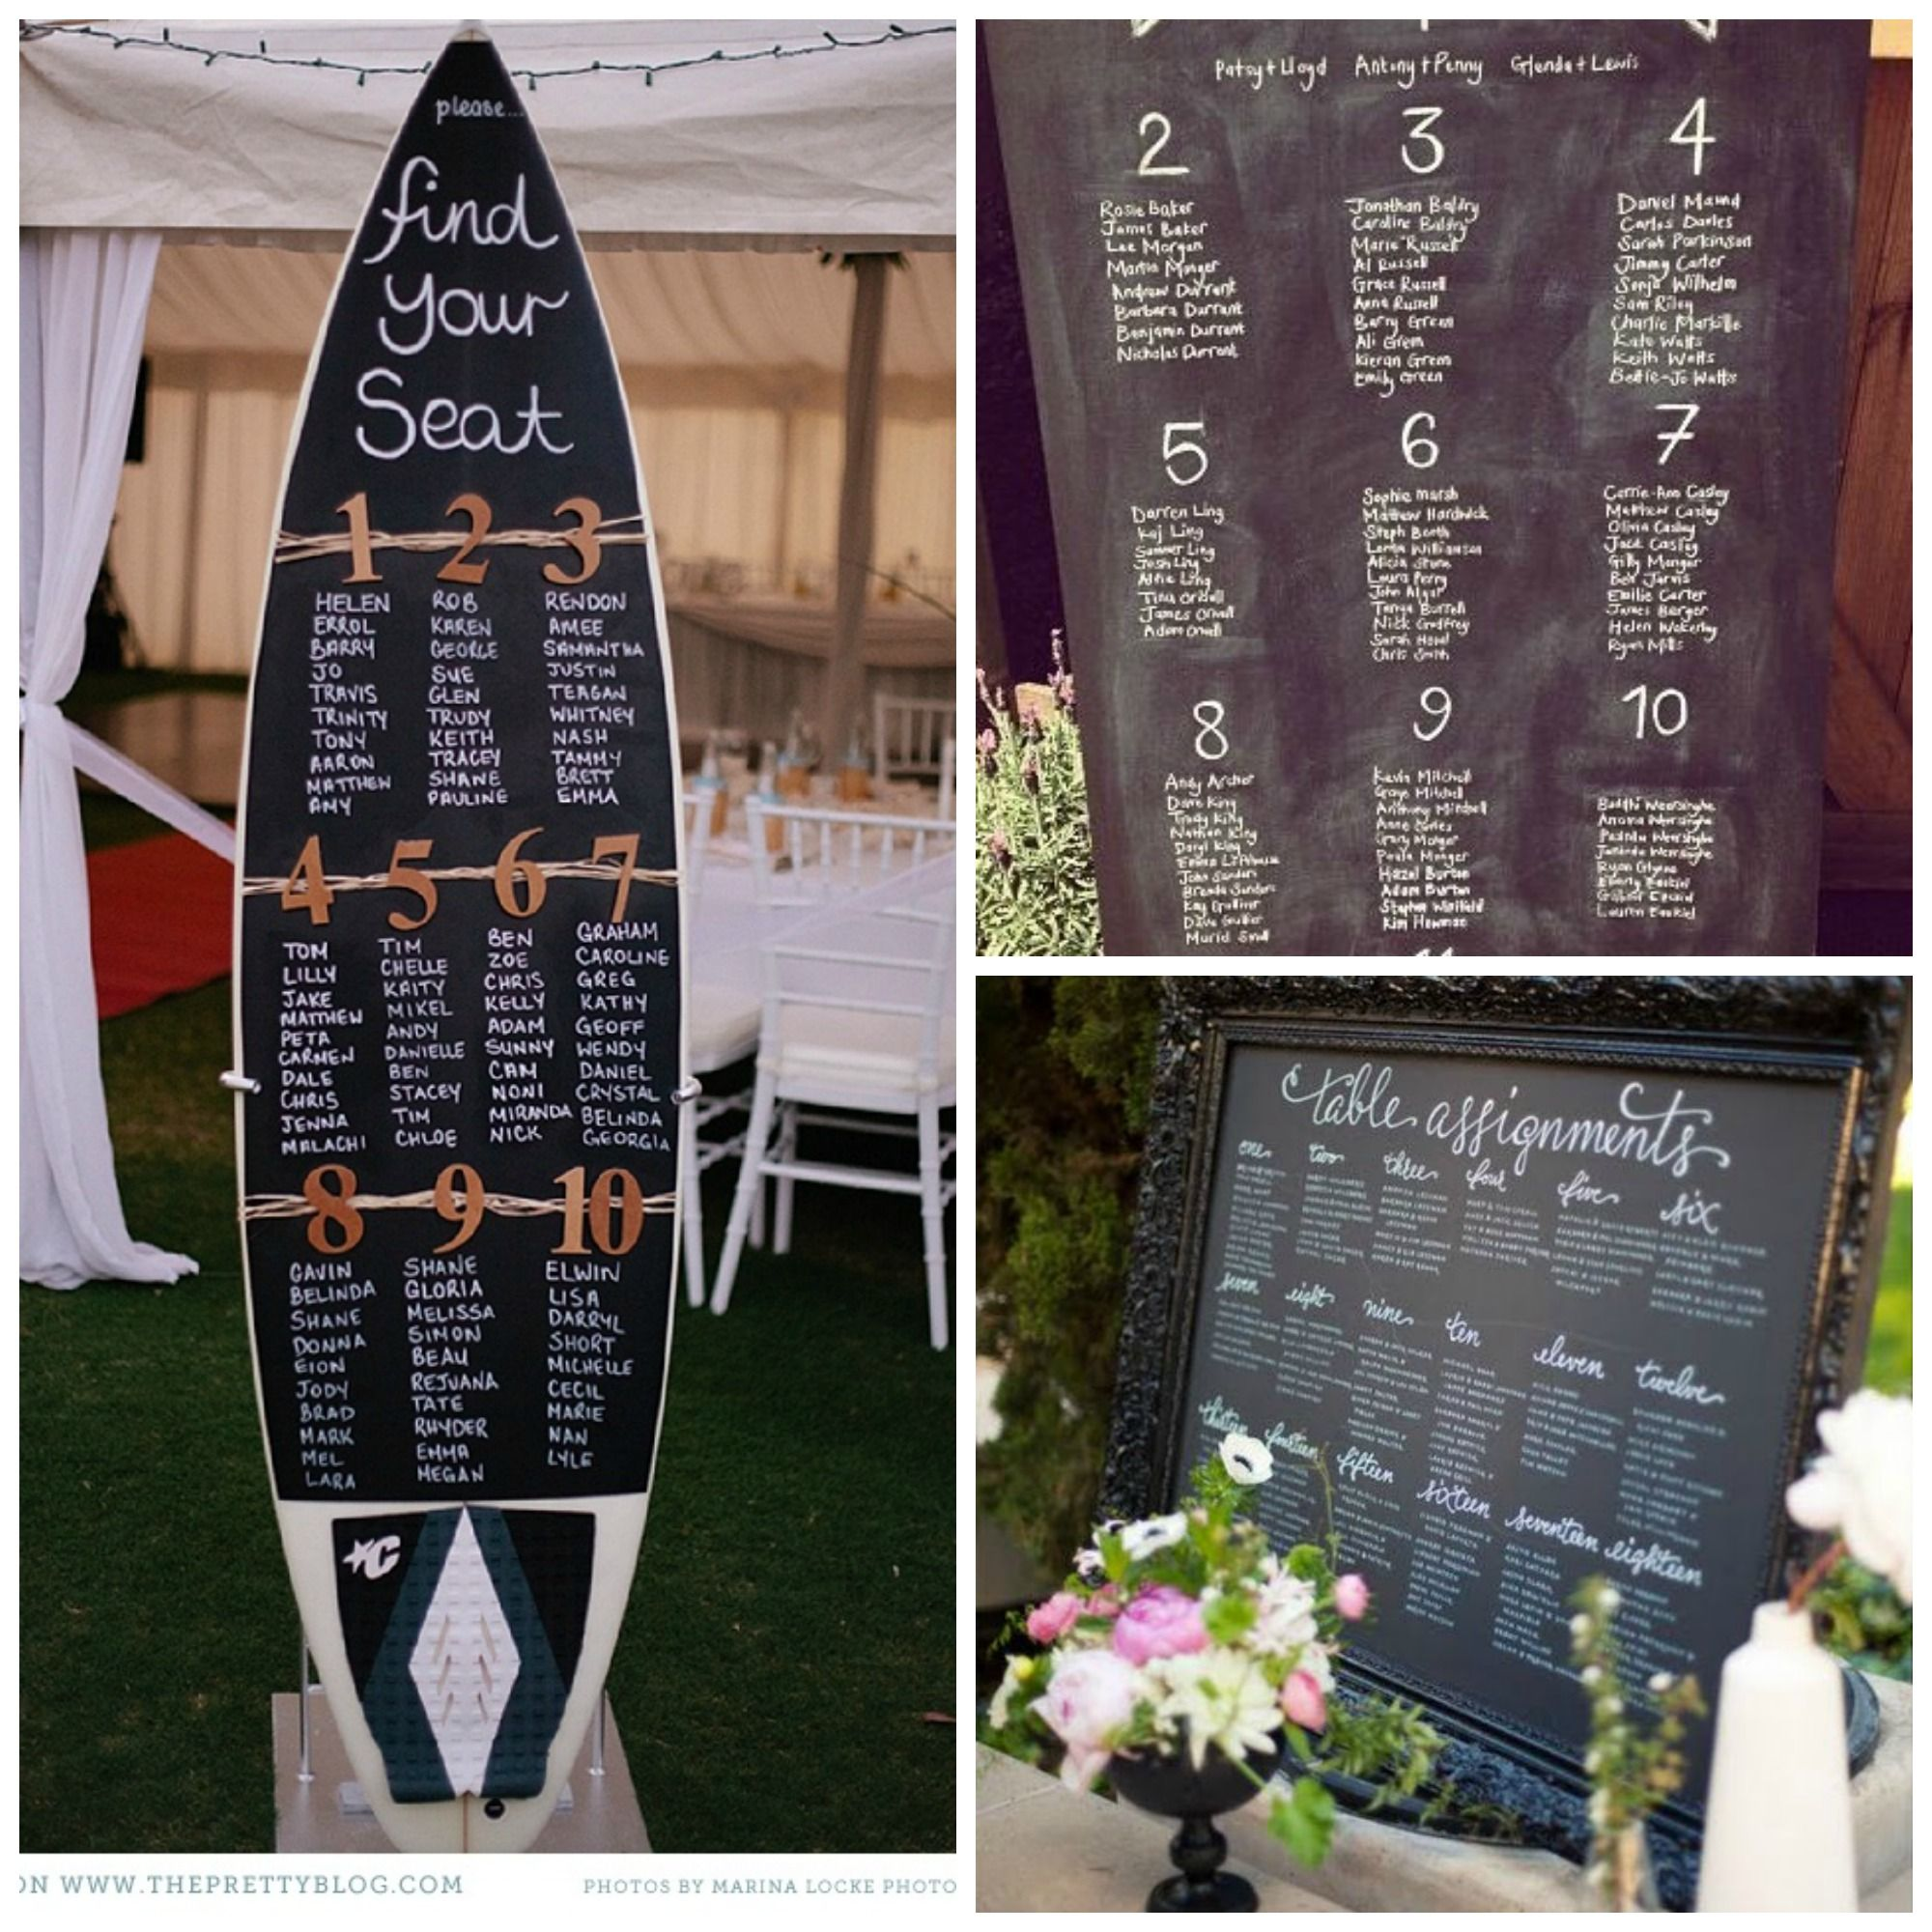 plan de table mariage ardoise mariage pinterest mariage blog and plan de tables. Black Bedroom Furniture Sets. Home Design Ideas